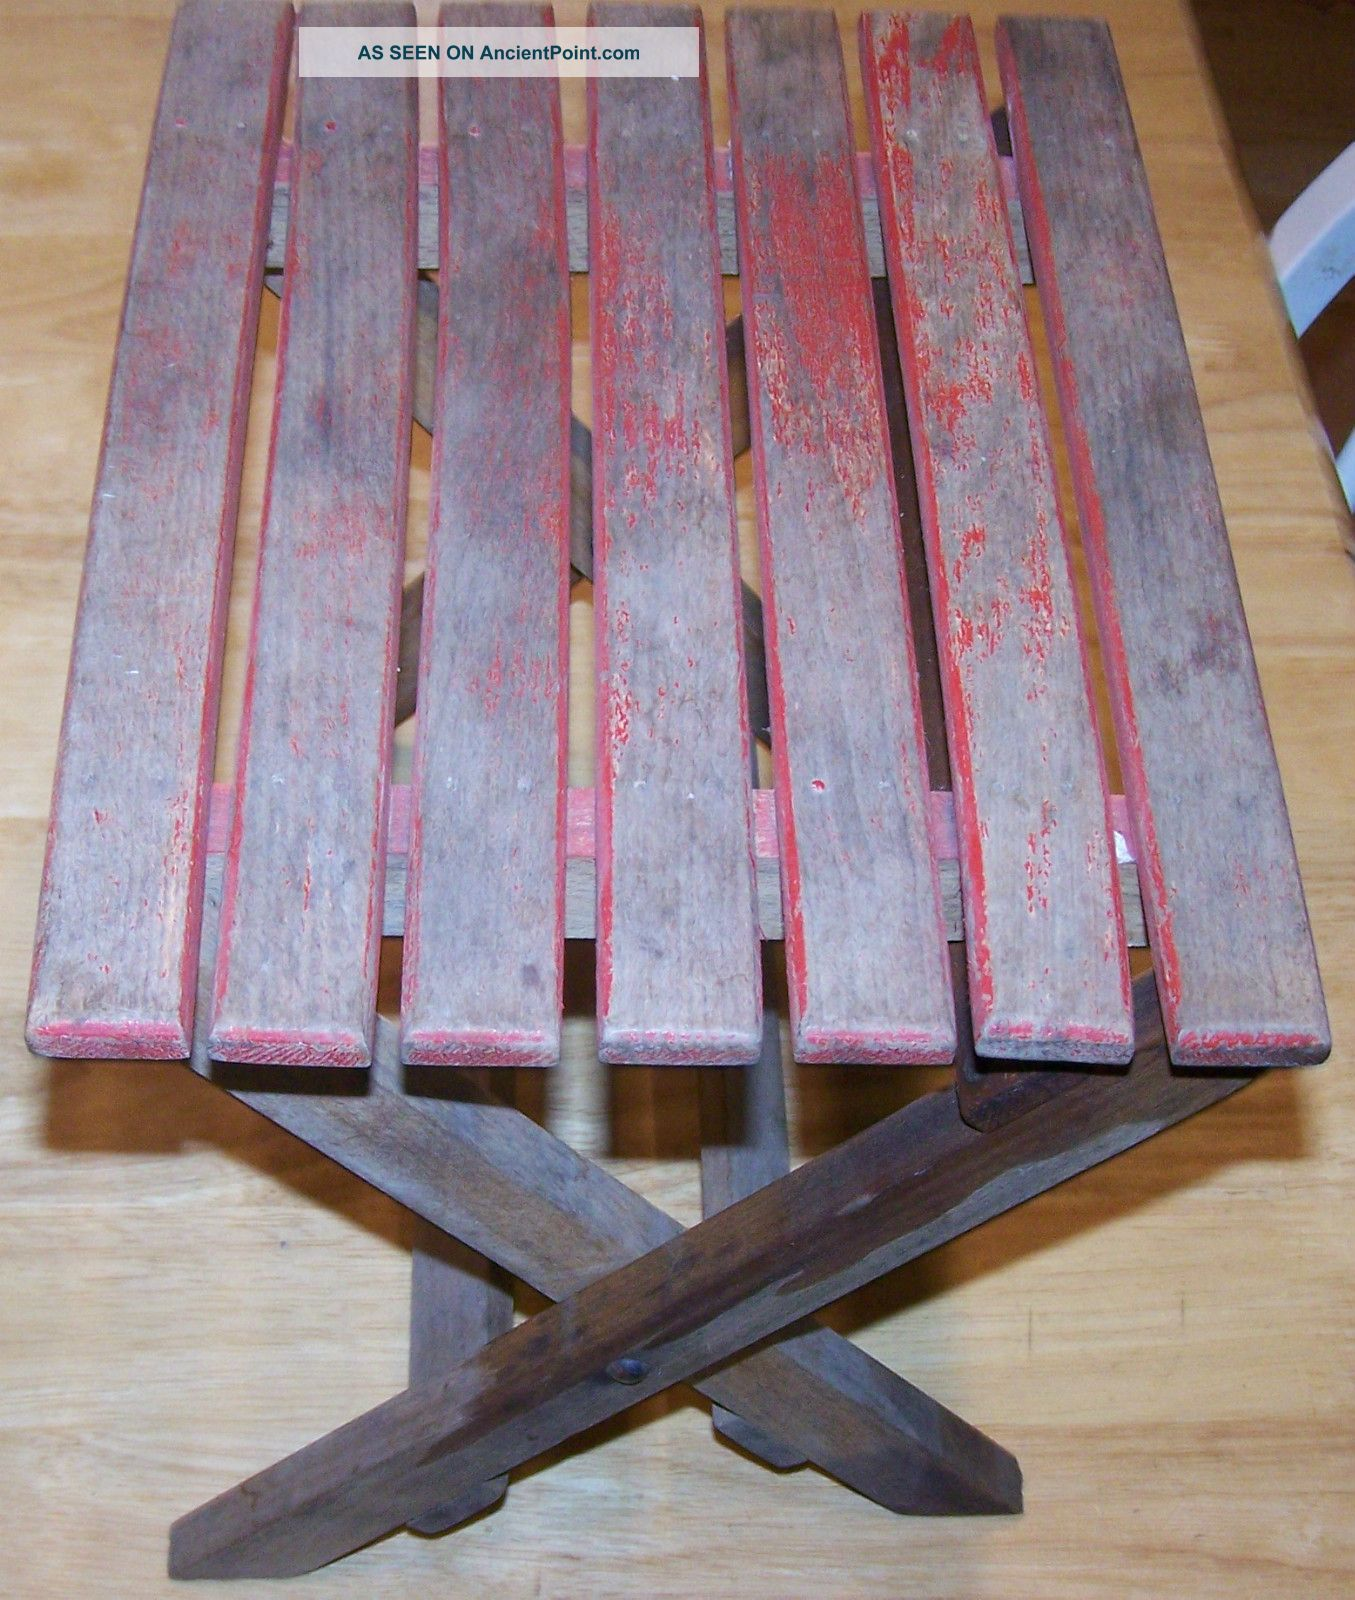 Vintage Antique Wood Folding Step Stool Wooden Fold Seat Red Brown Rustic Child Unknown photo